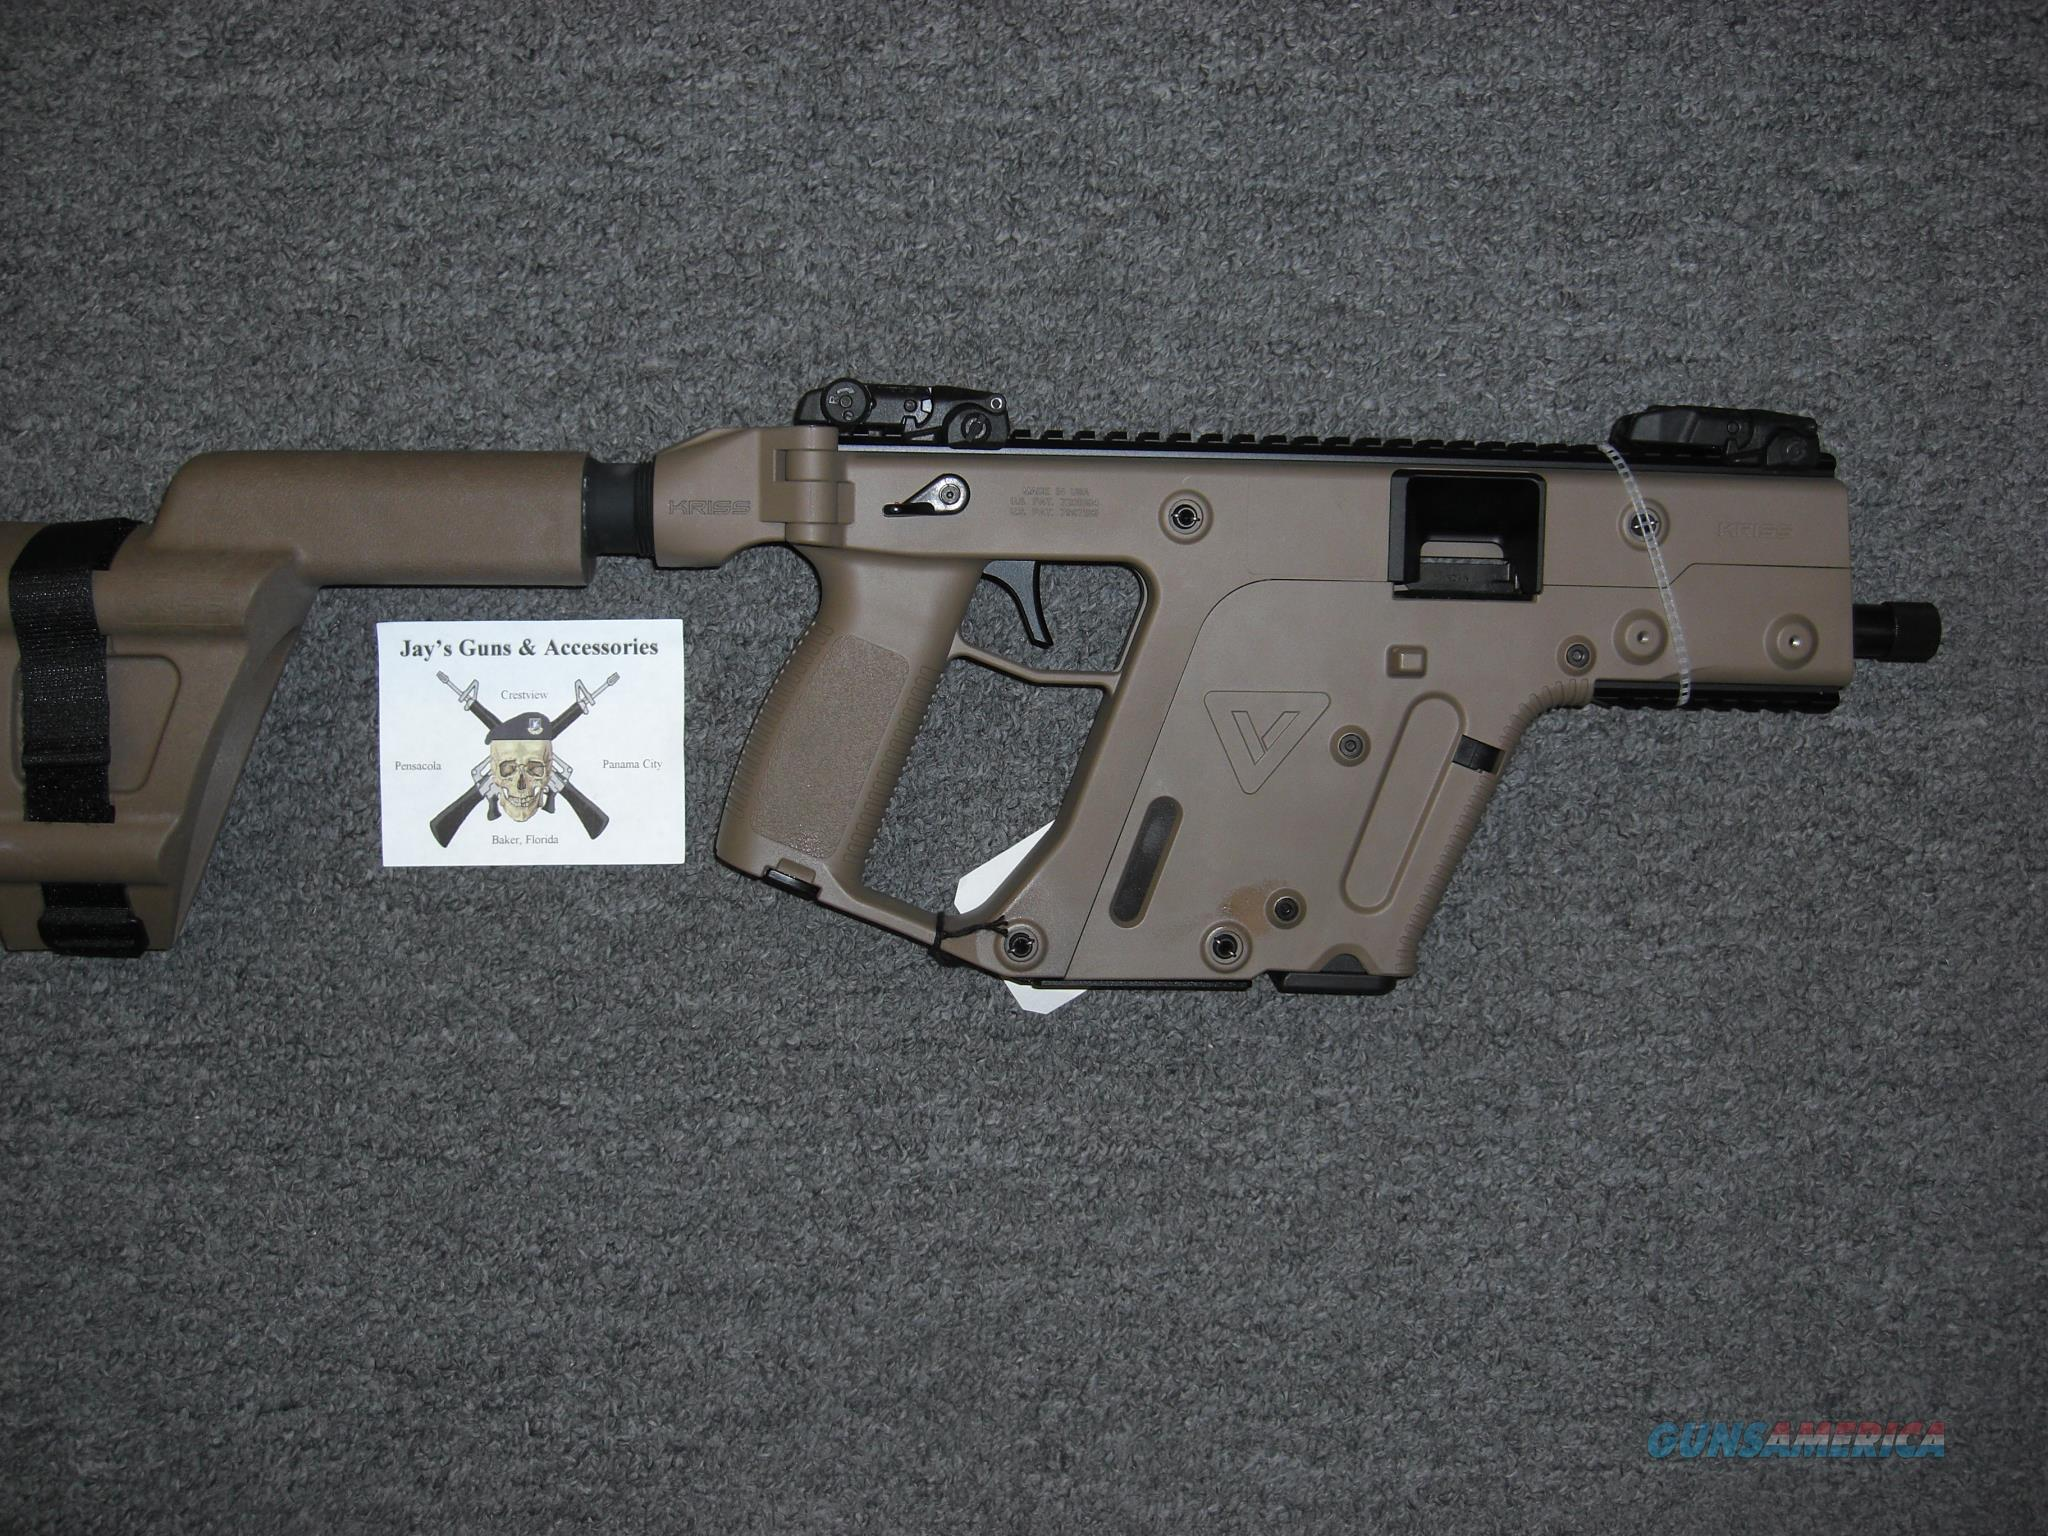 Kriss Vector SDP Gen 2 w/Arm Brace Uses Glock 17 Mags  Guns > Pistols > Kriss Tactical Pistols